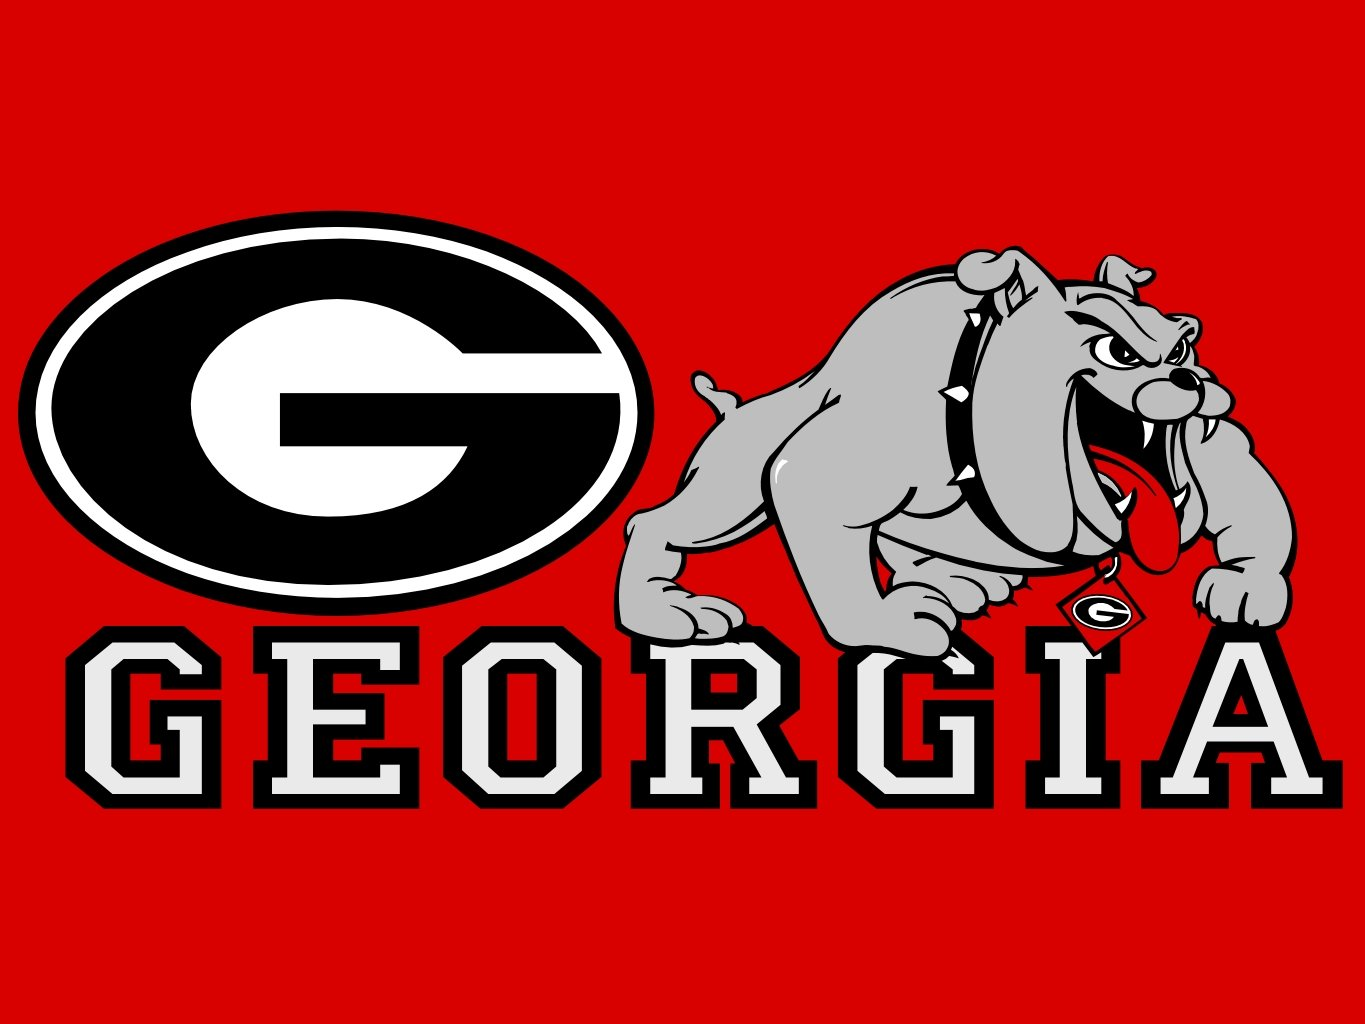 Hd Wallpapers Georgia Bulldogs 360 X 480 61 Kb Jpeg 1365x1024